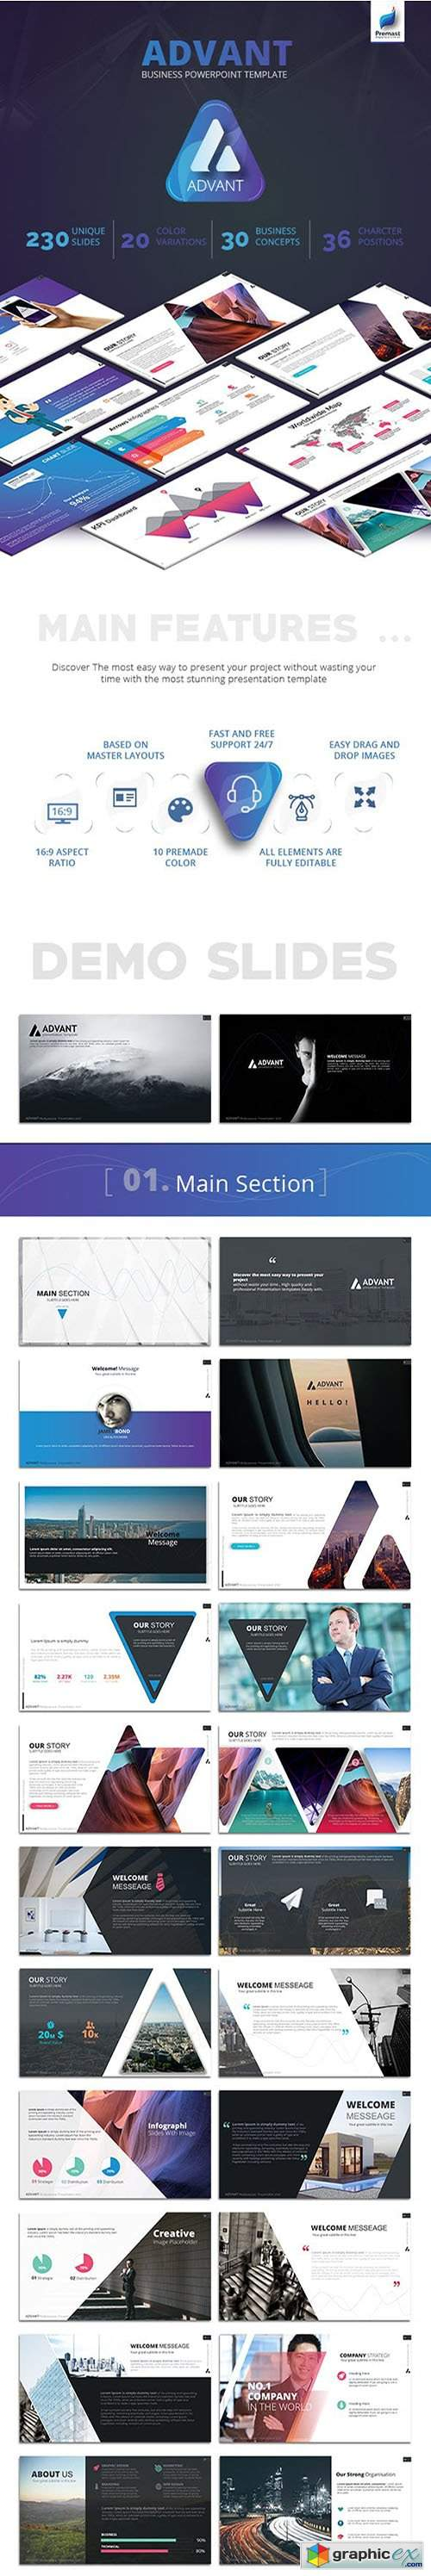 Advant Business PowerPoint Template